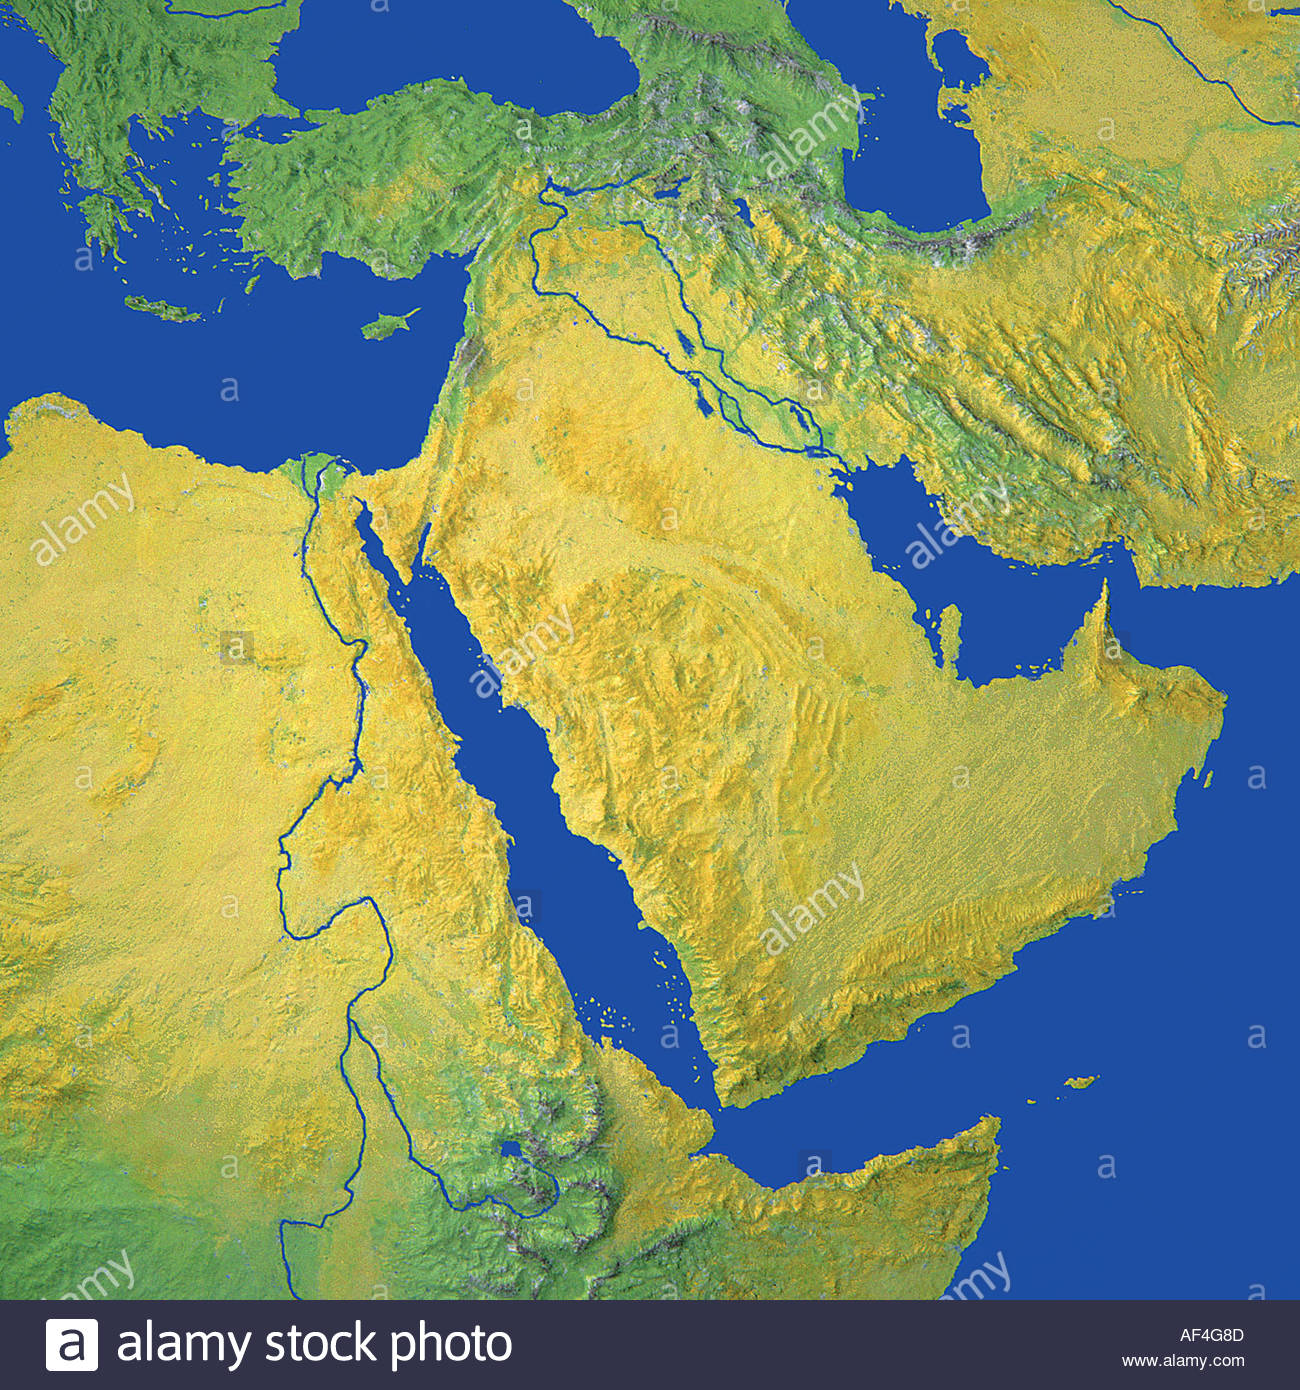 map maps globe globes middle east turkey iraq saudi arabia egypt Egypt Saudi Arabia Map stock photo map maps globe globes middle east turkey iraq saudi arabia egypt north africa egypt saudi arabia bridge